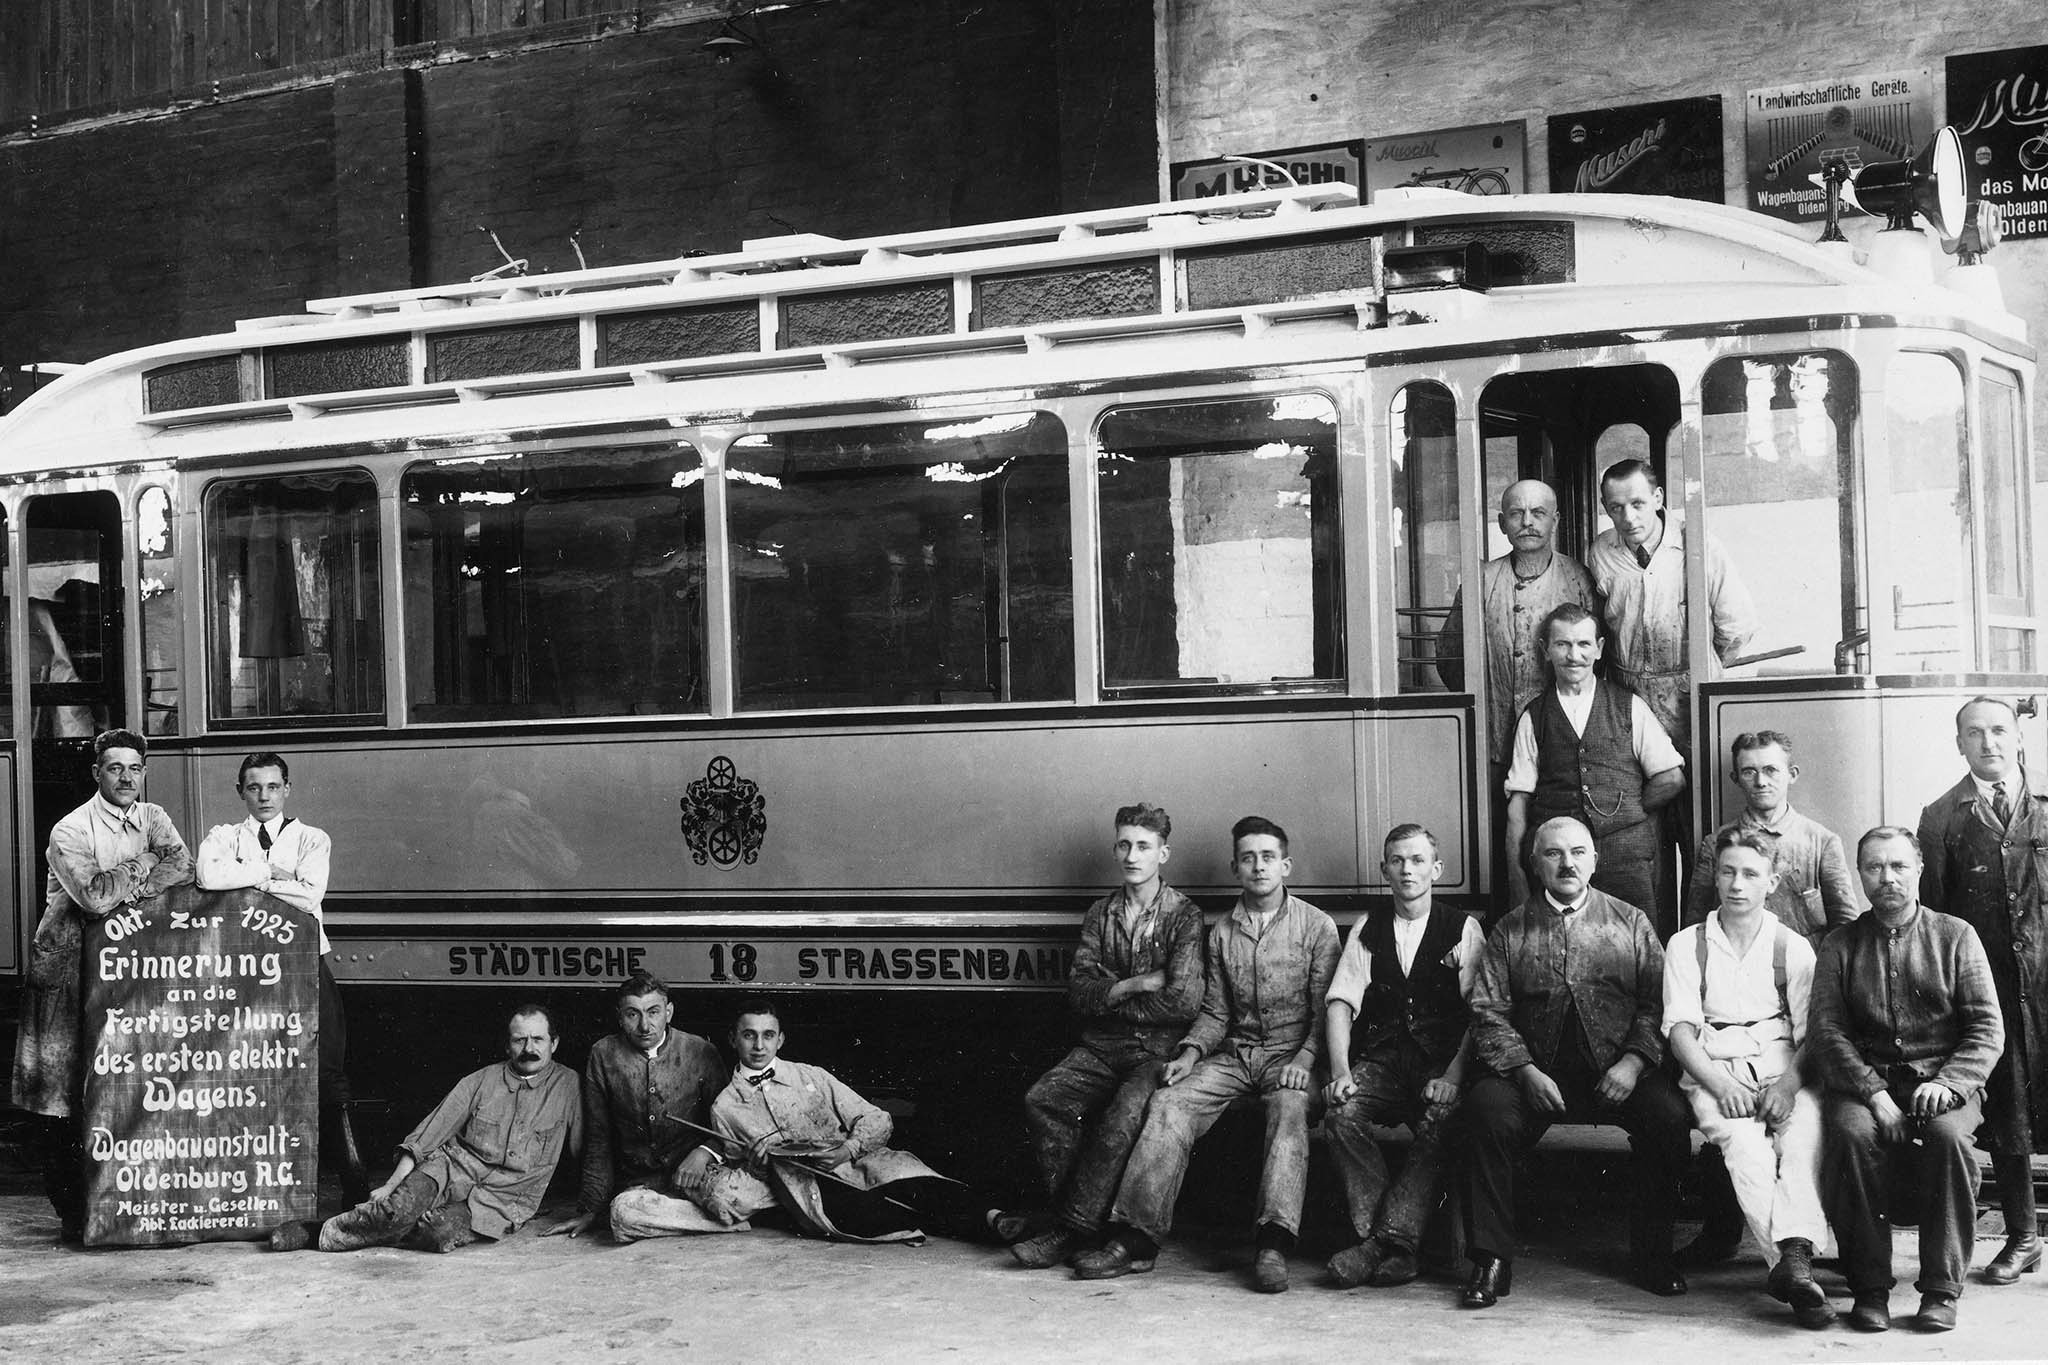 1925 eerste electrische tram in Oldenburg